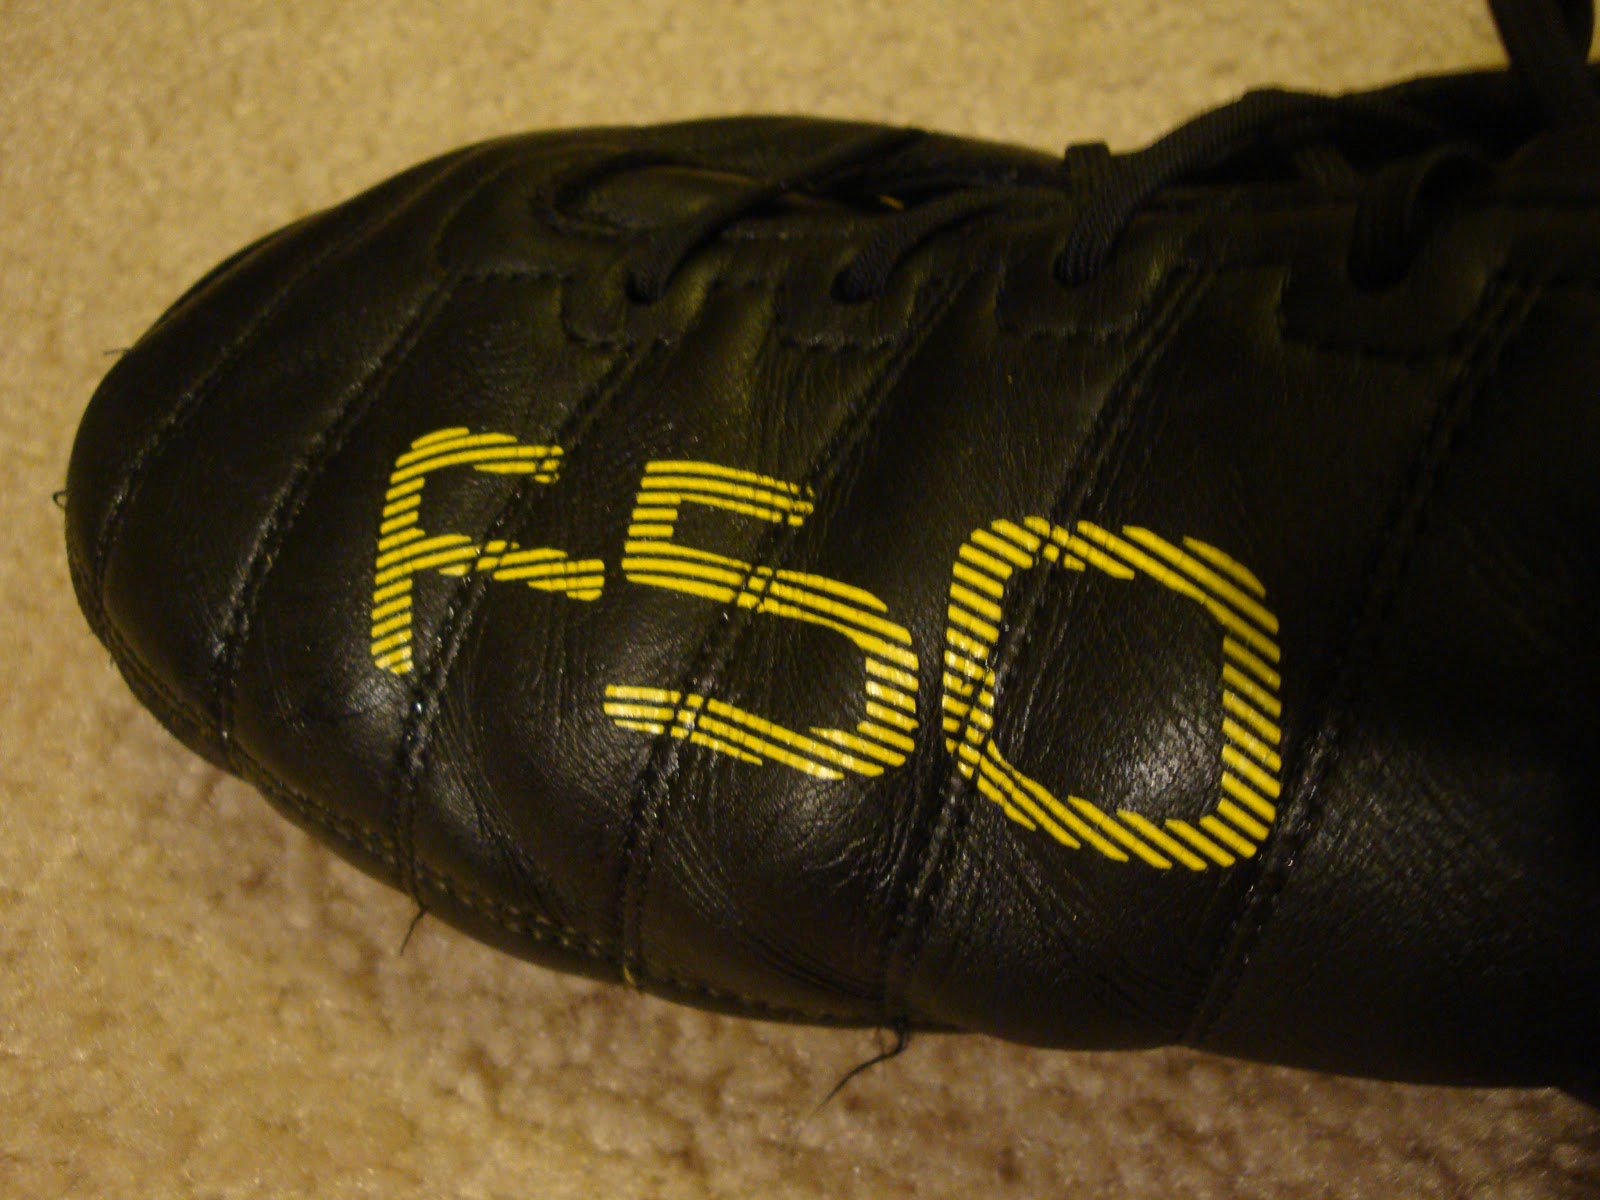 Soccer Wrap Up - The Latest Soccer News: Adidas F50 Adizero Review ...